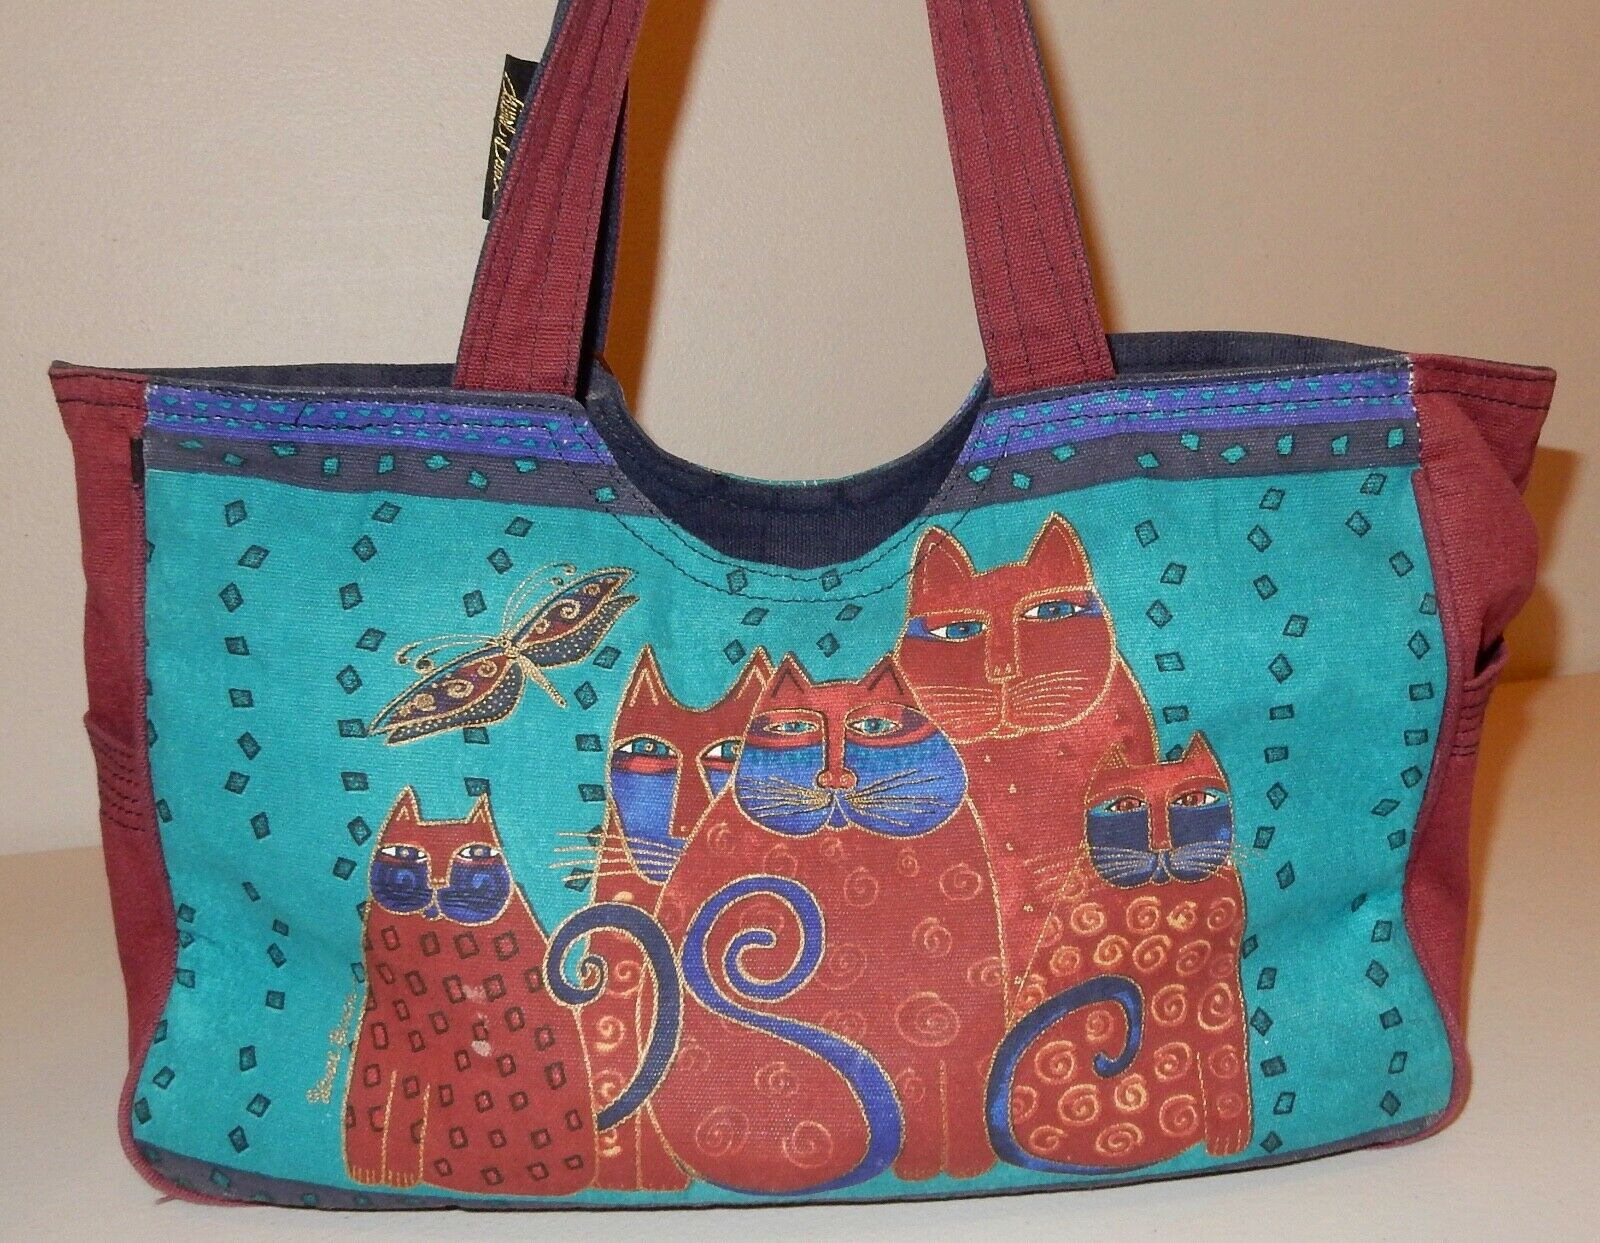 Laurel Burch Cat Tote Bag & Pouch Used - image 6